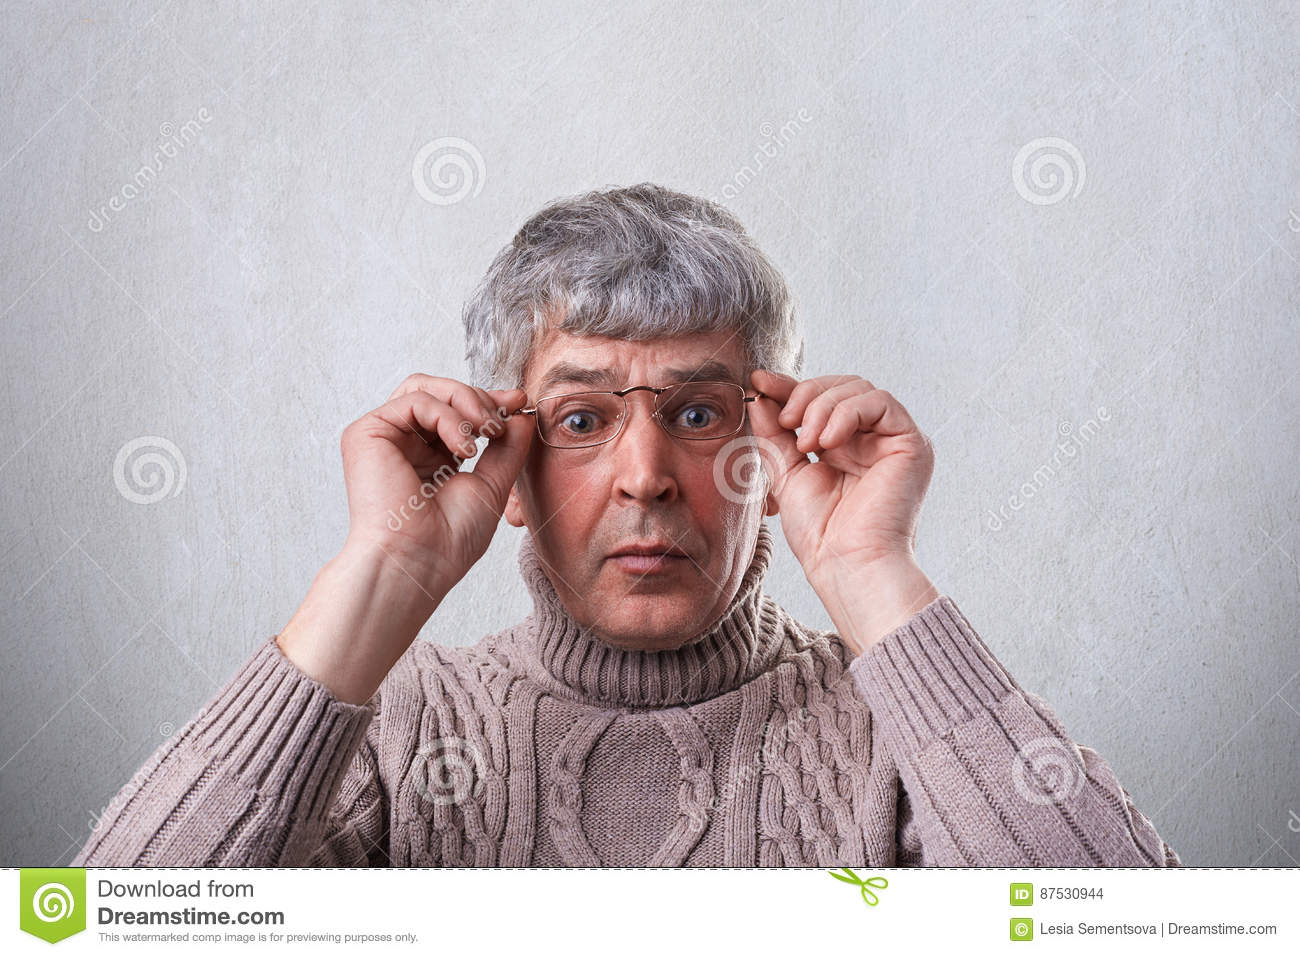 A close-up of astonished senior man wearing glasses and sweater holding his hands on the frames of glasses looking with wide opene